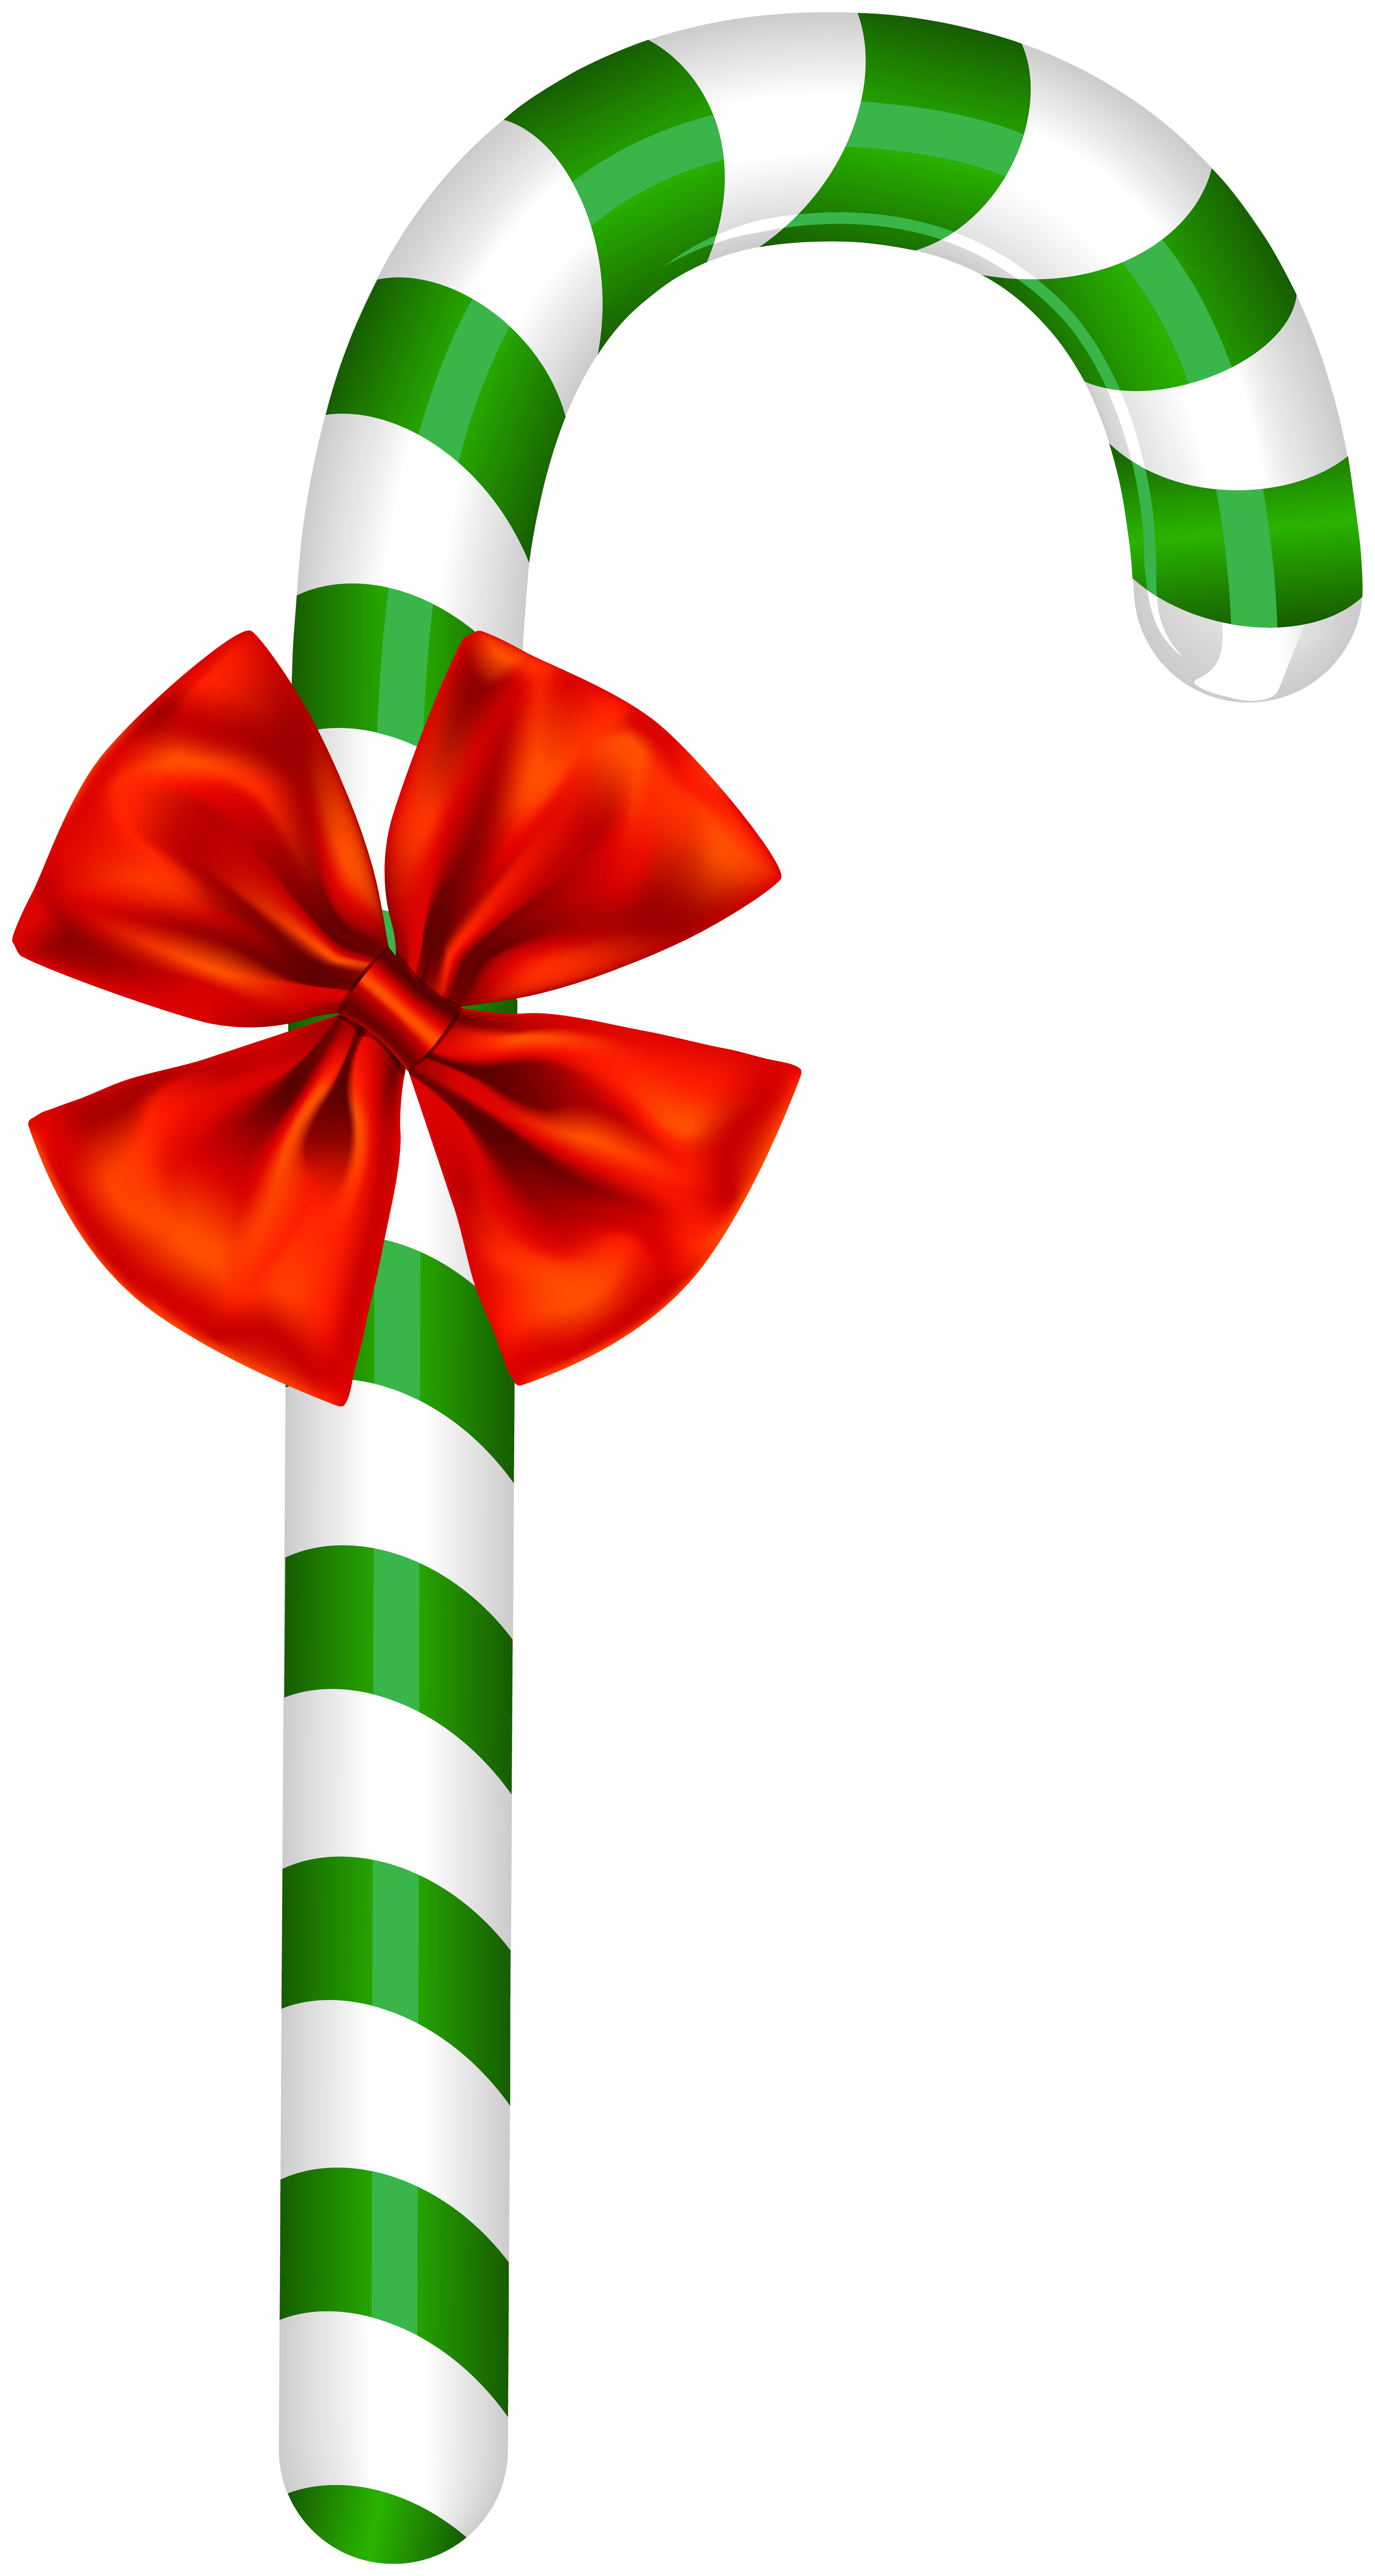 Peppermint Candy Cane Clip Art Image.